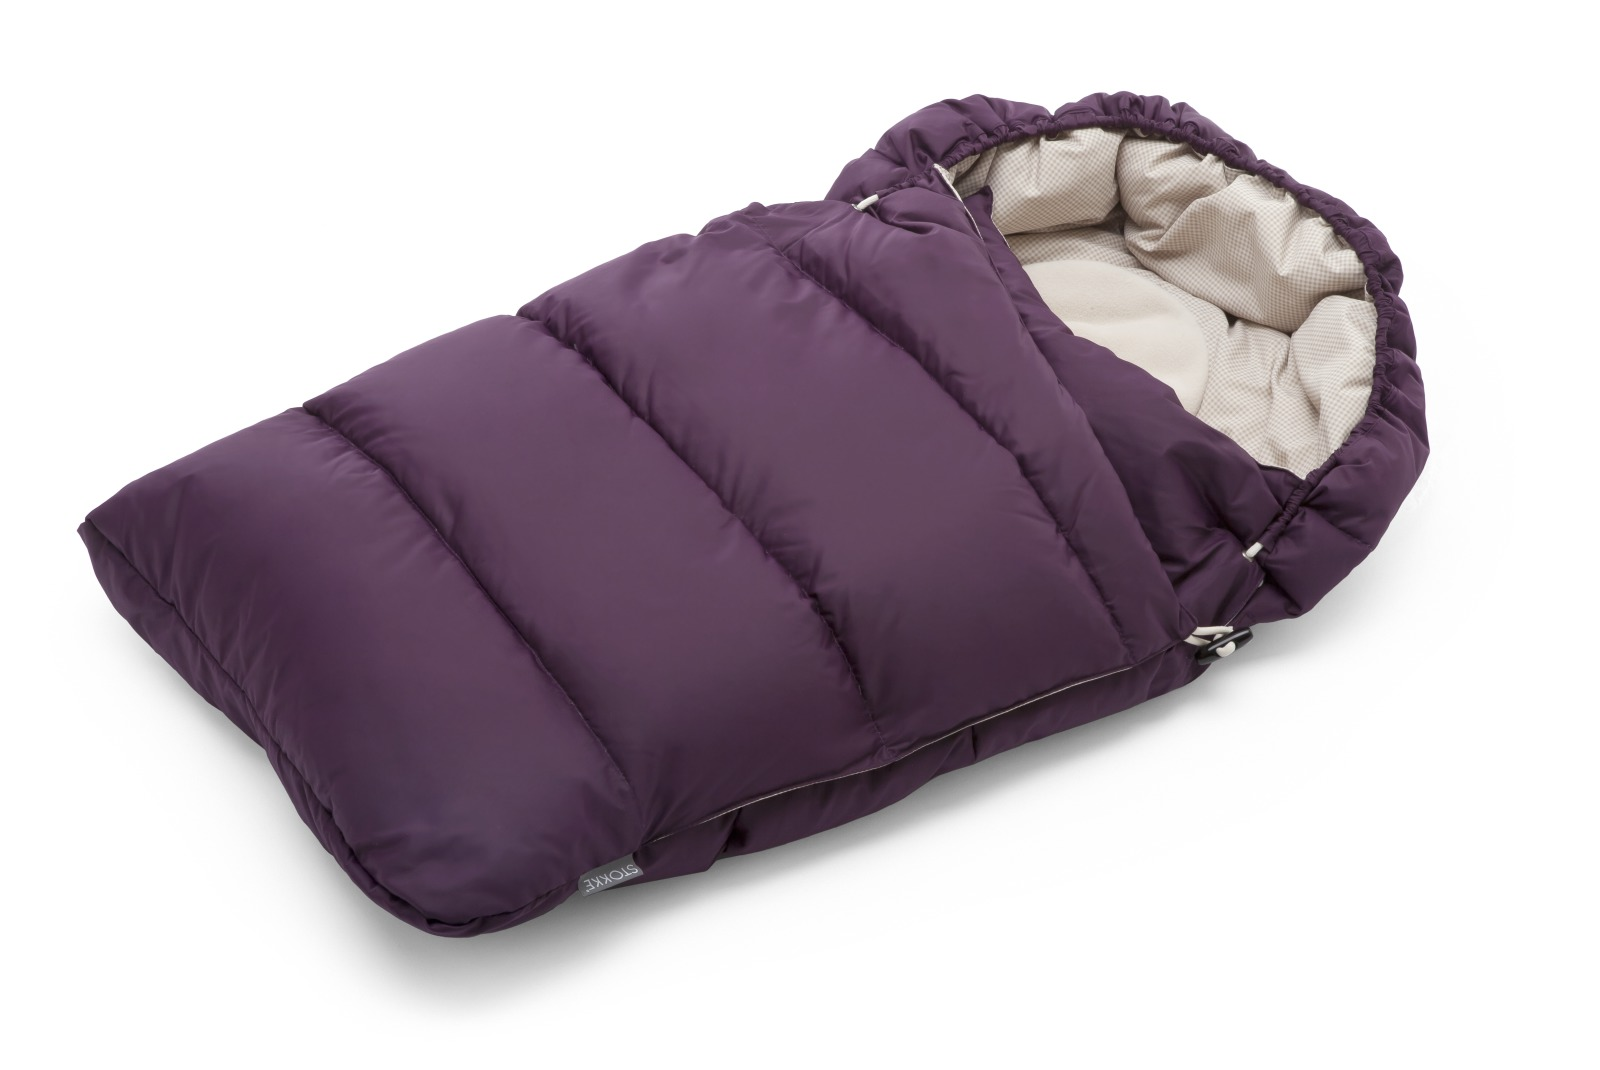 Stokke® Down Sleepingbag, Purple.